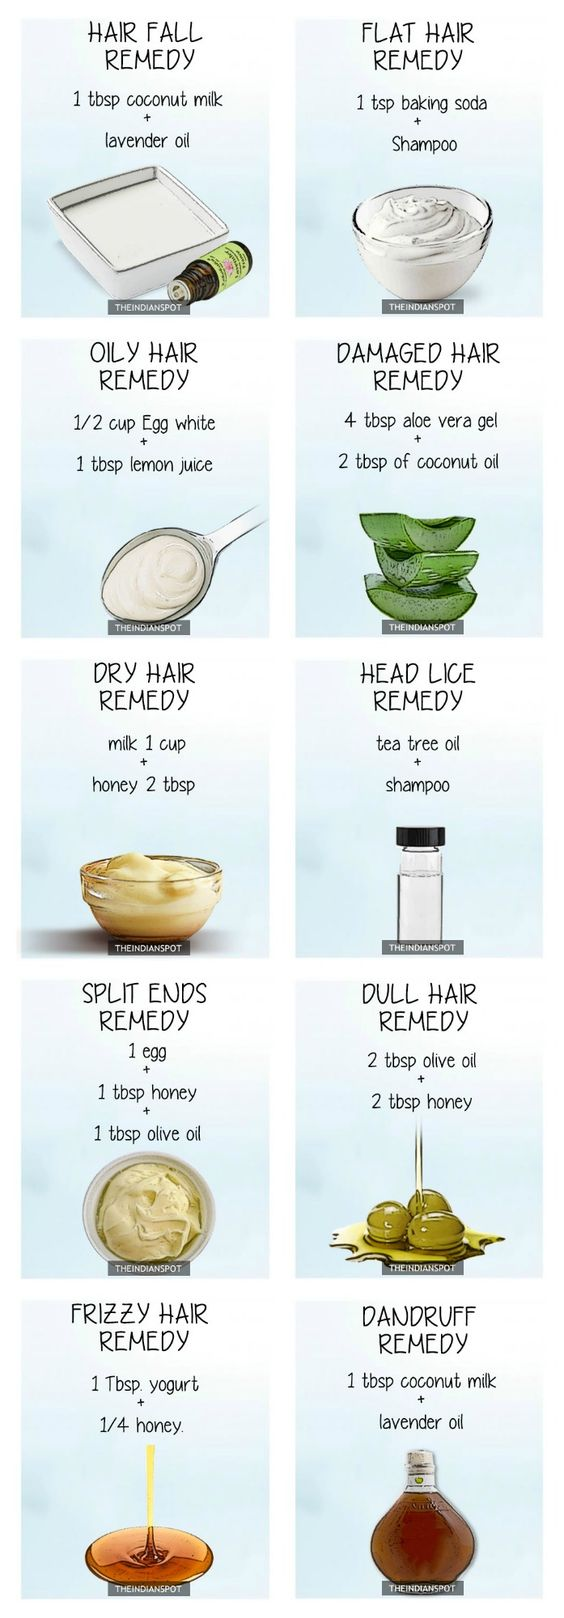 TOP 10 NATURAL REMEDIES FOR EVERY HAIR PROBLEM: